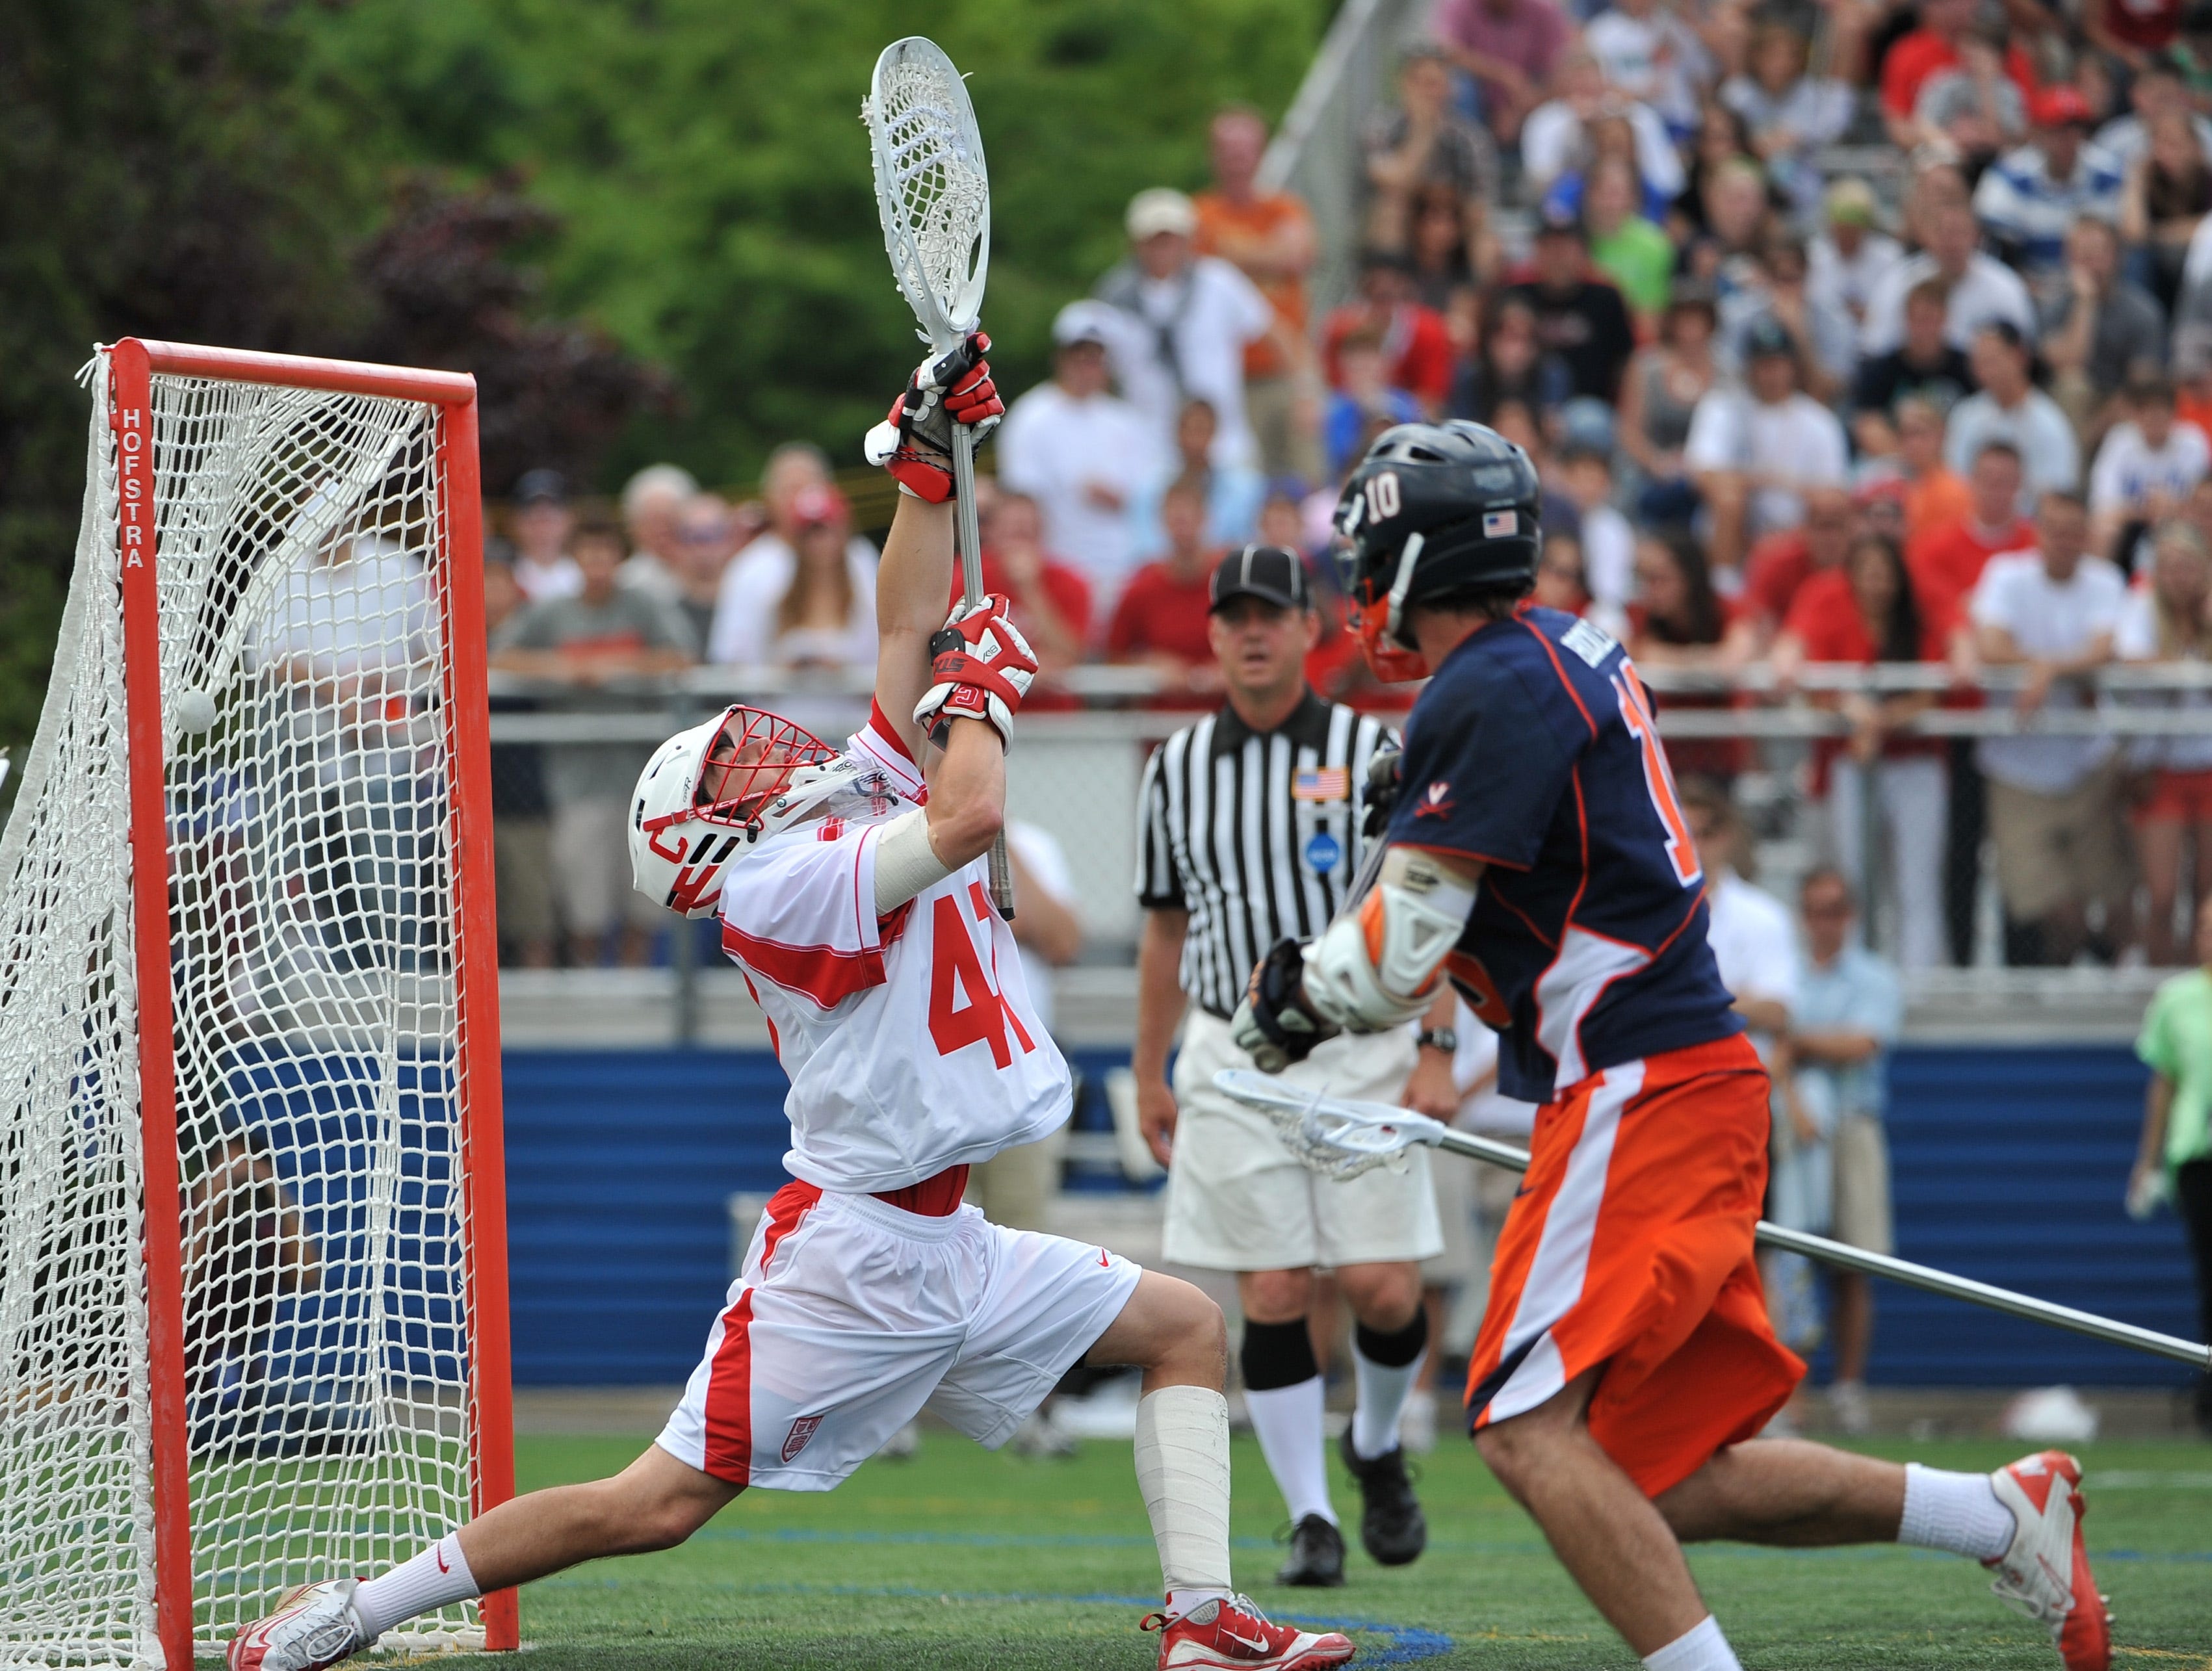 Virginia's Chris Bocklet (10) fires the ball past Cornell goalie AJ Fiore for a goal in the second quarter of an NCAA Division I men's lacrosse tournament quarterfinal at Hofstra University on Saturday, May 21, 2011, in Hempstead, N.Y. Virginia won 13-9.